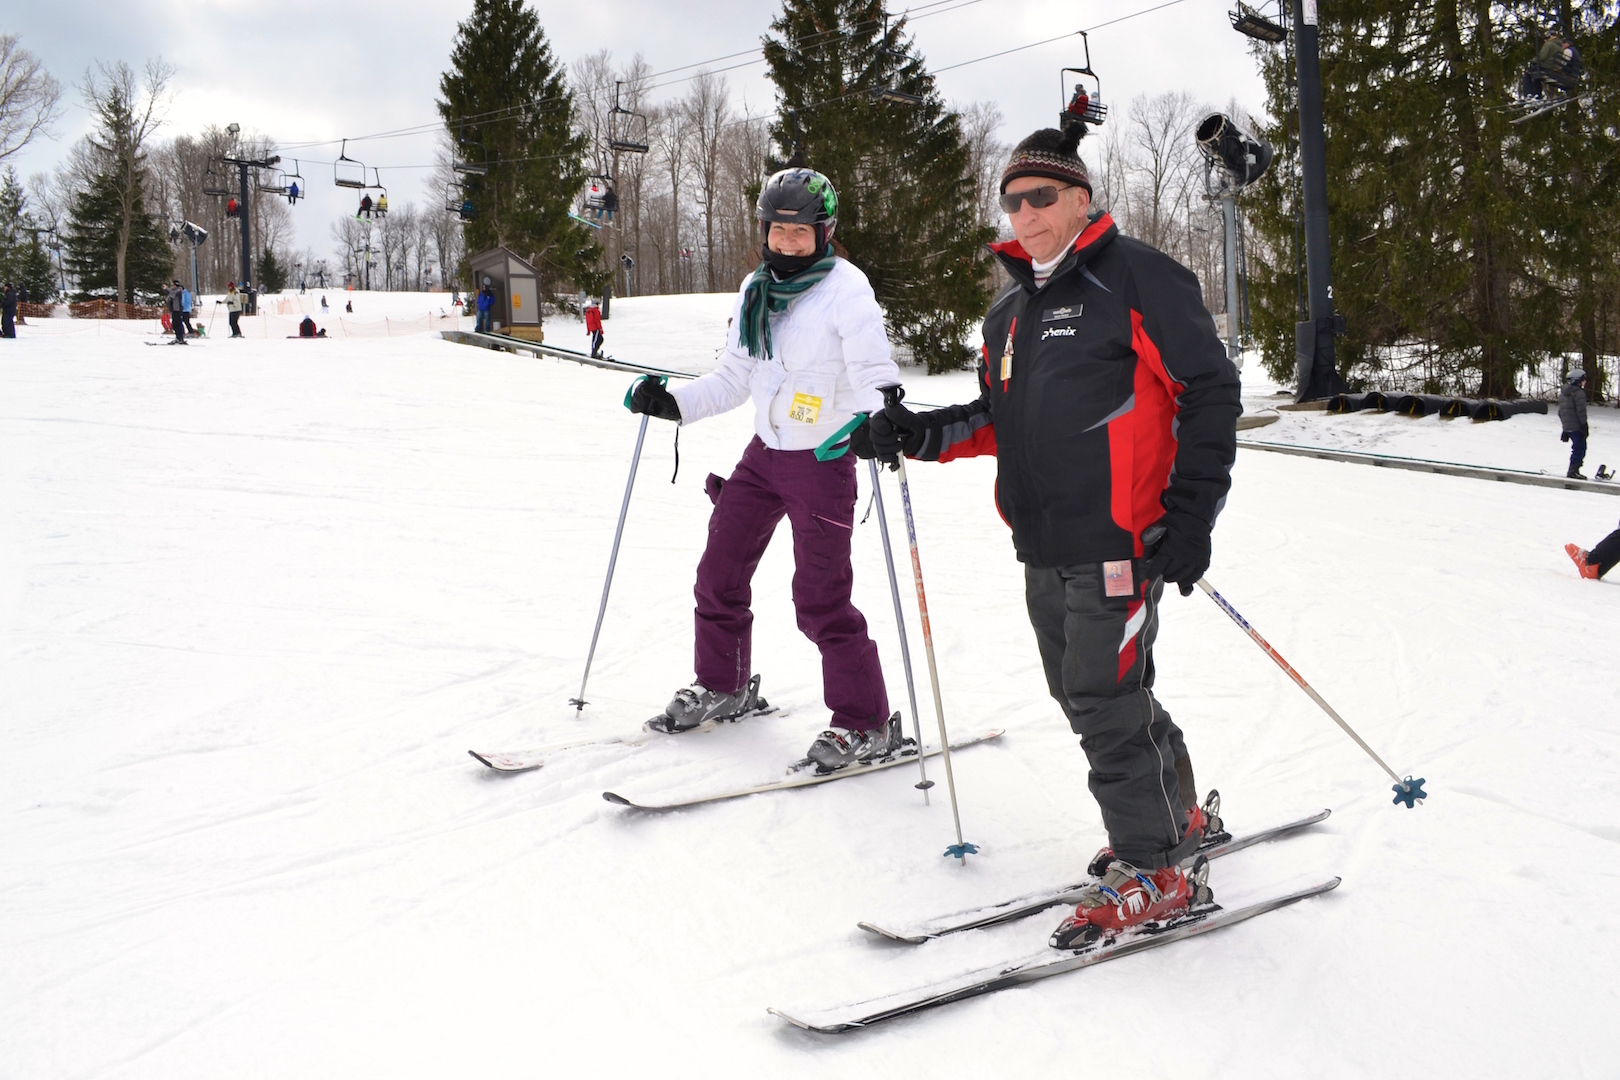 Snow Sports Lessons at Snow Trails